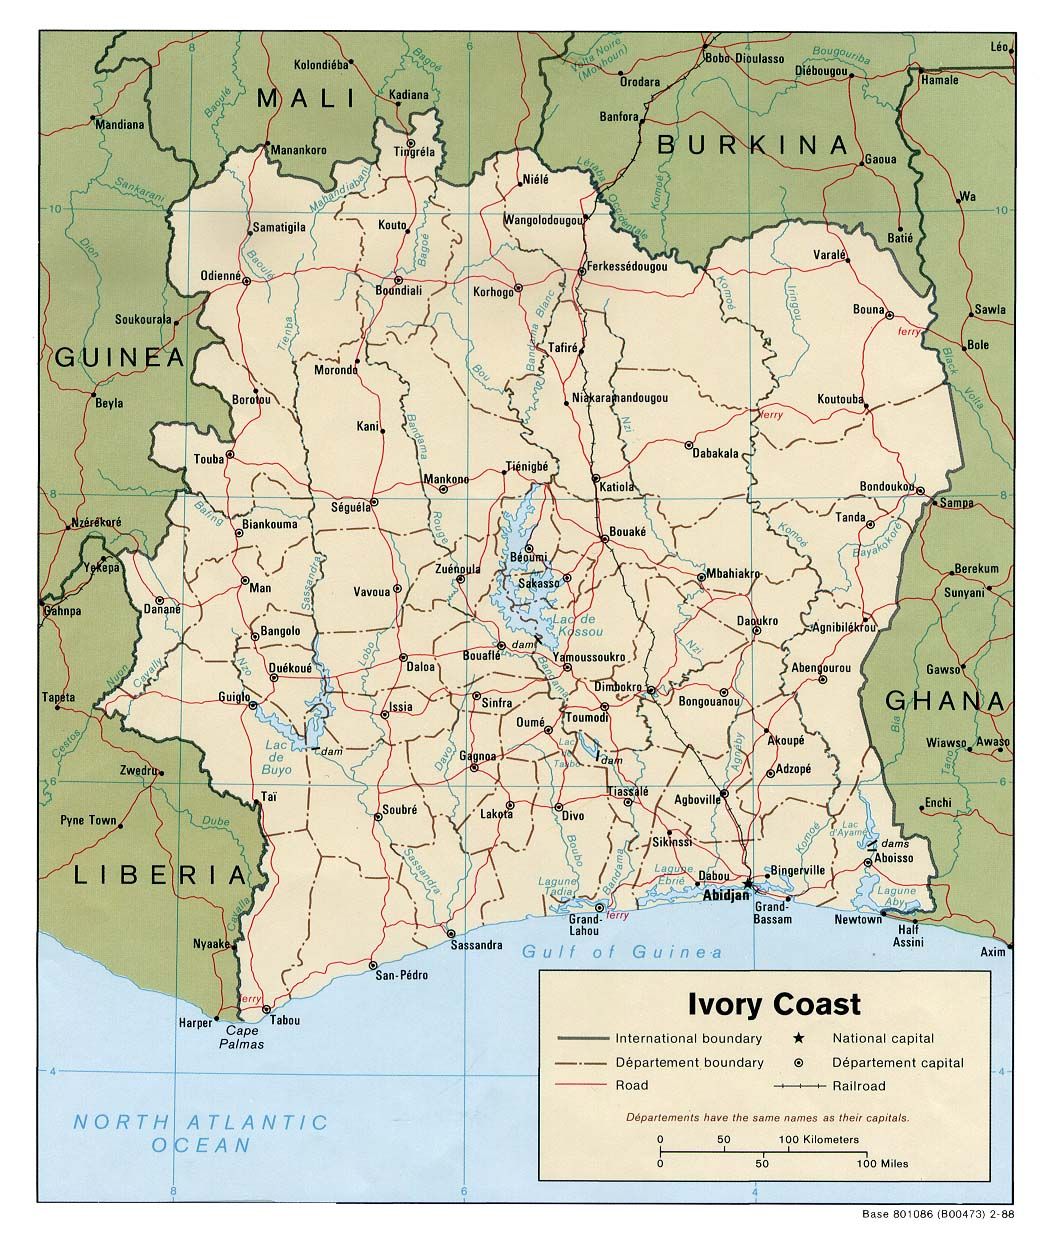 Picture of: Cote D Ivoire Ivory Coast Maps Perry Castaneda Map Collection Ut Library Online